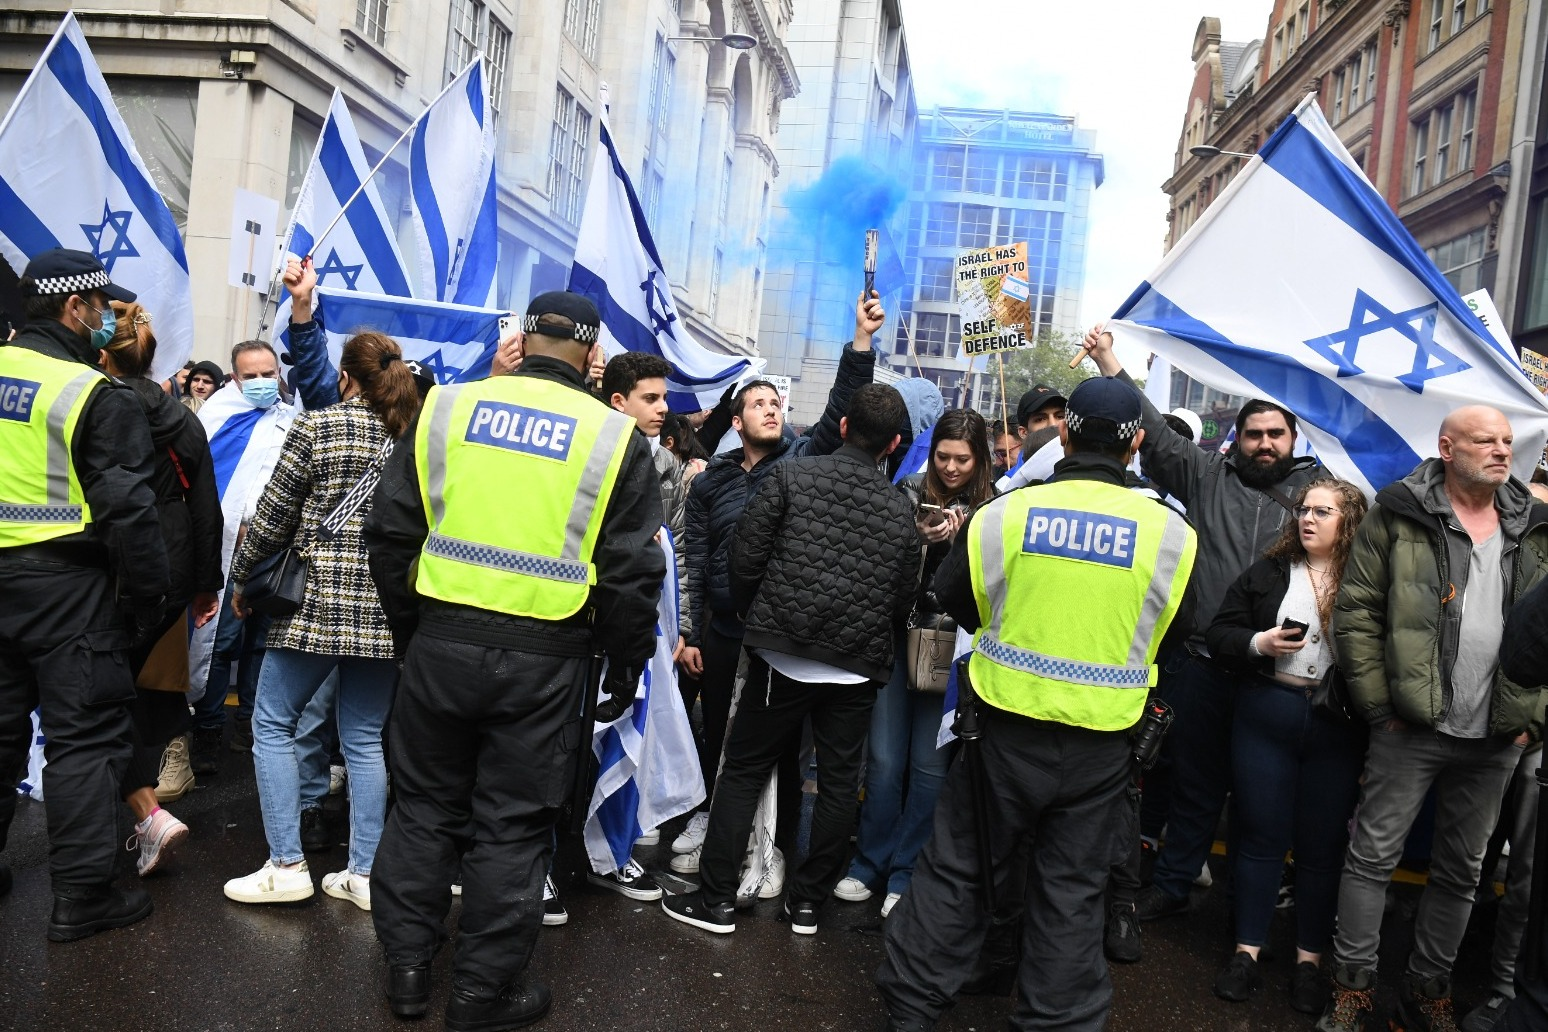 Police step in after 'free Palestine' supporters approach pro-Israel protesters